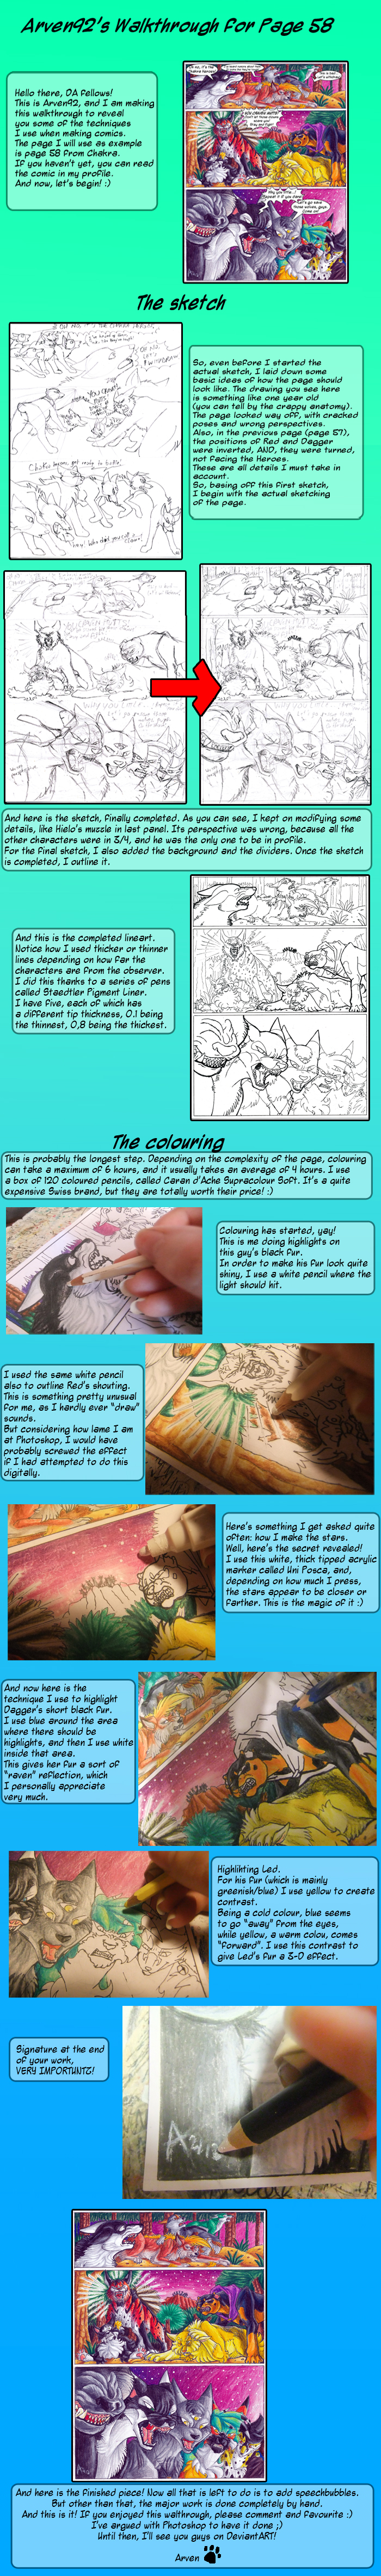 Page 58 Visual Walkthrough by ARVEN92